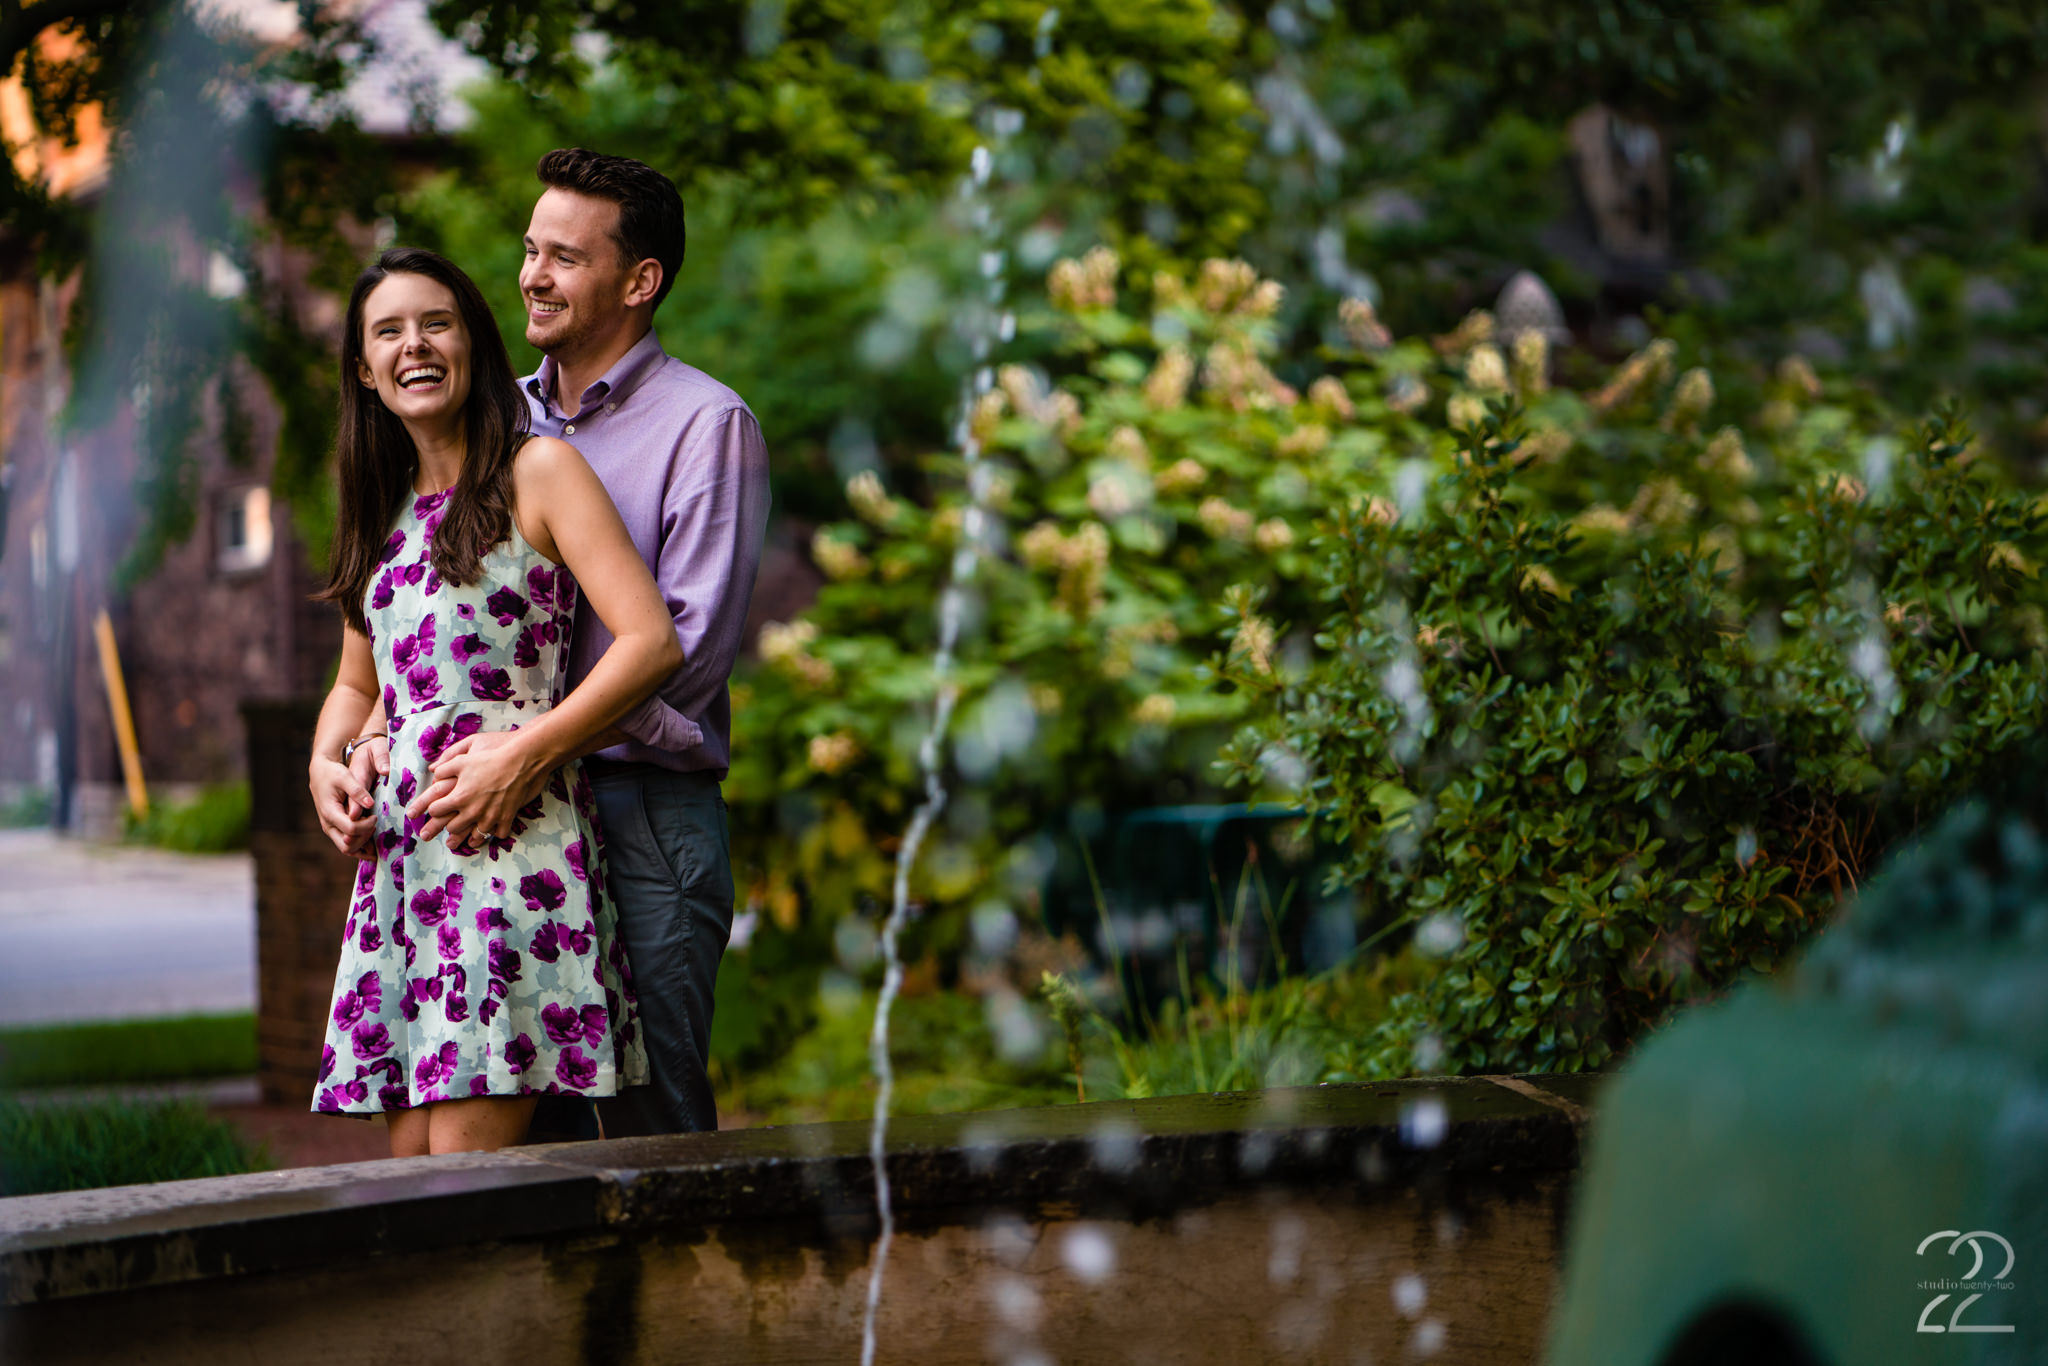 What is a more perfect summer engagement photography outfit than a simple floral dress while at Merrick Rose Garden in Chicago, Illinois.